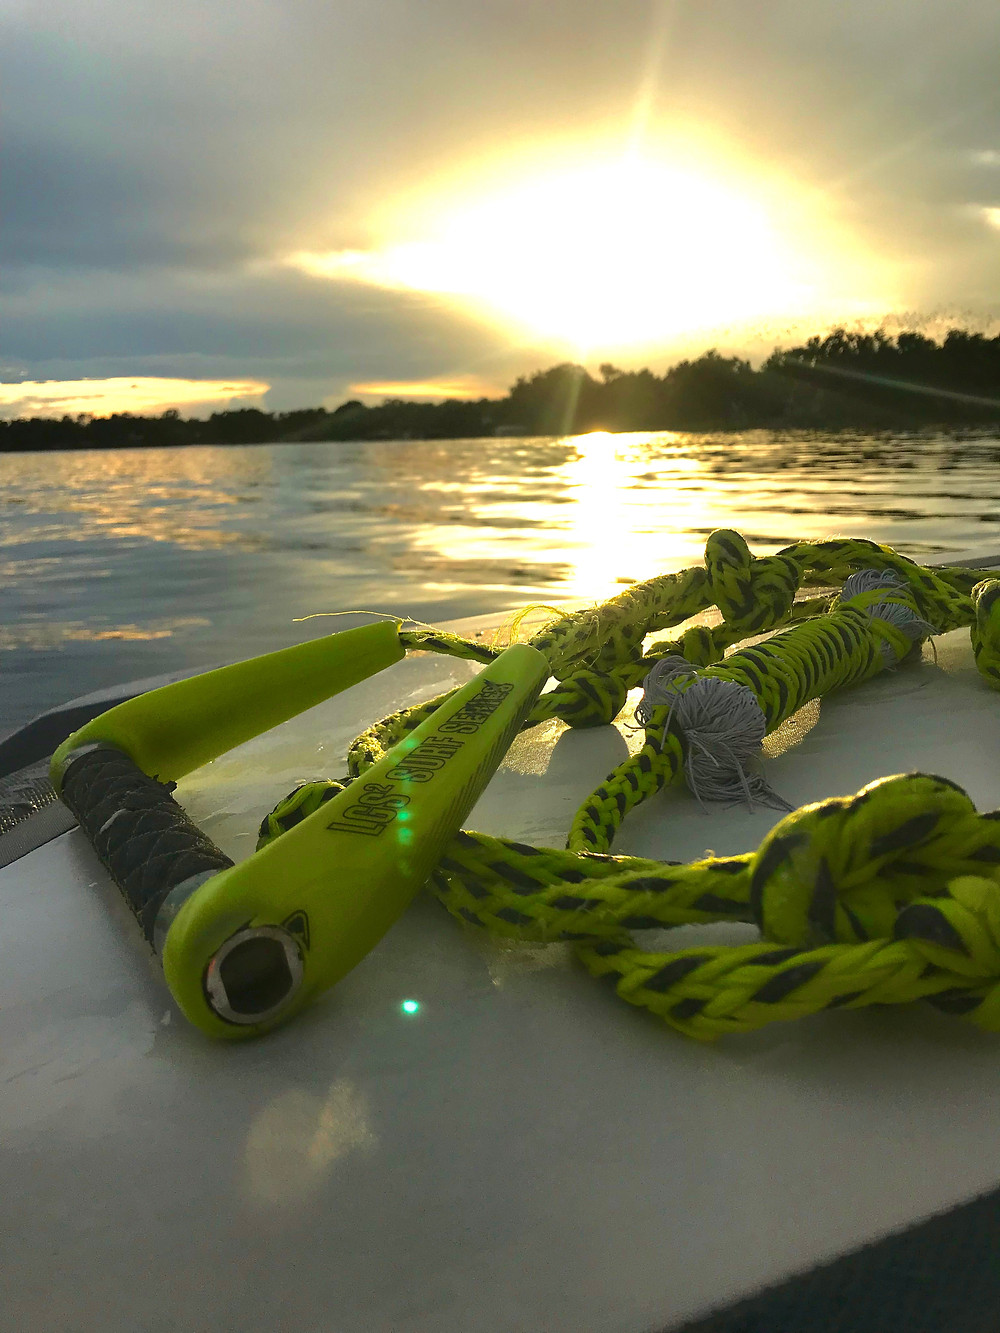 Proline LGS2 Wakesurf Rope and Handle Combo with Bungee